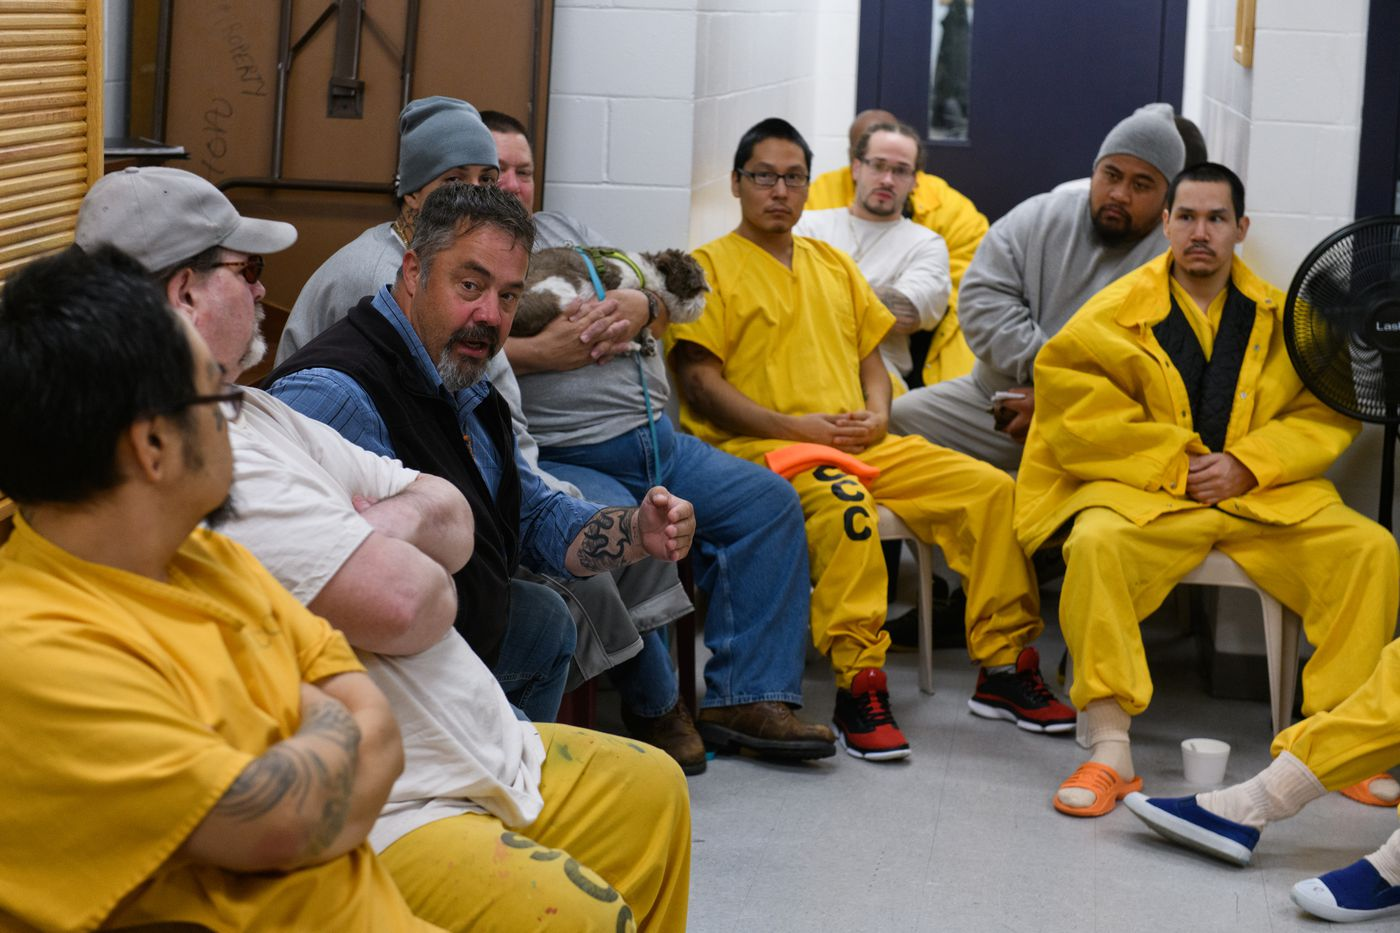 Spring Creek Correctional Center superintendent Bill Lapinskas joins a discussion on morals and ethics on September 28, 2018. The prisoner-led class is optional for inmates, but often fills the room, Lapinskas said. (Marc Lester / ADN)